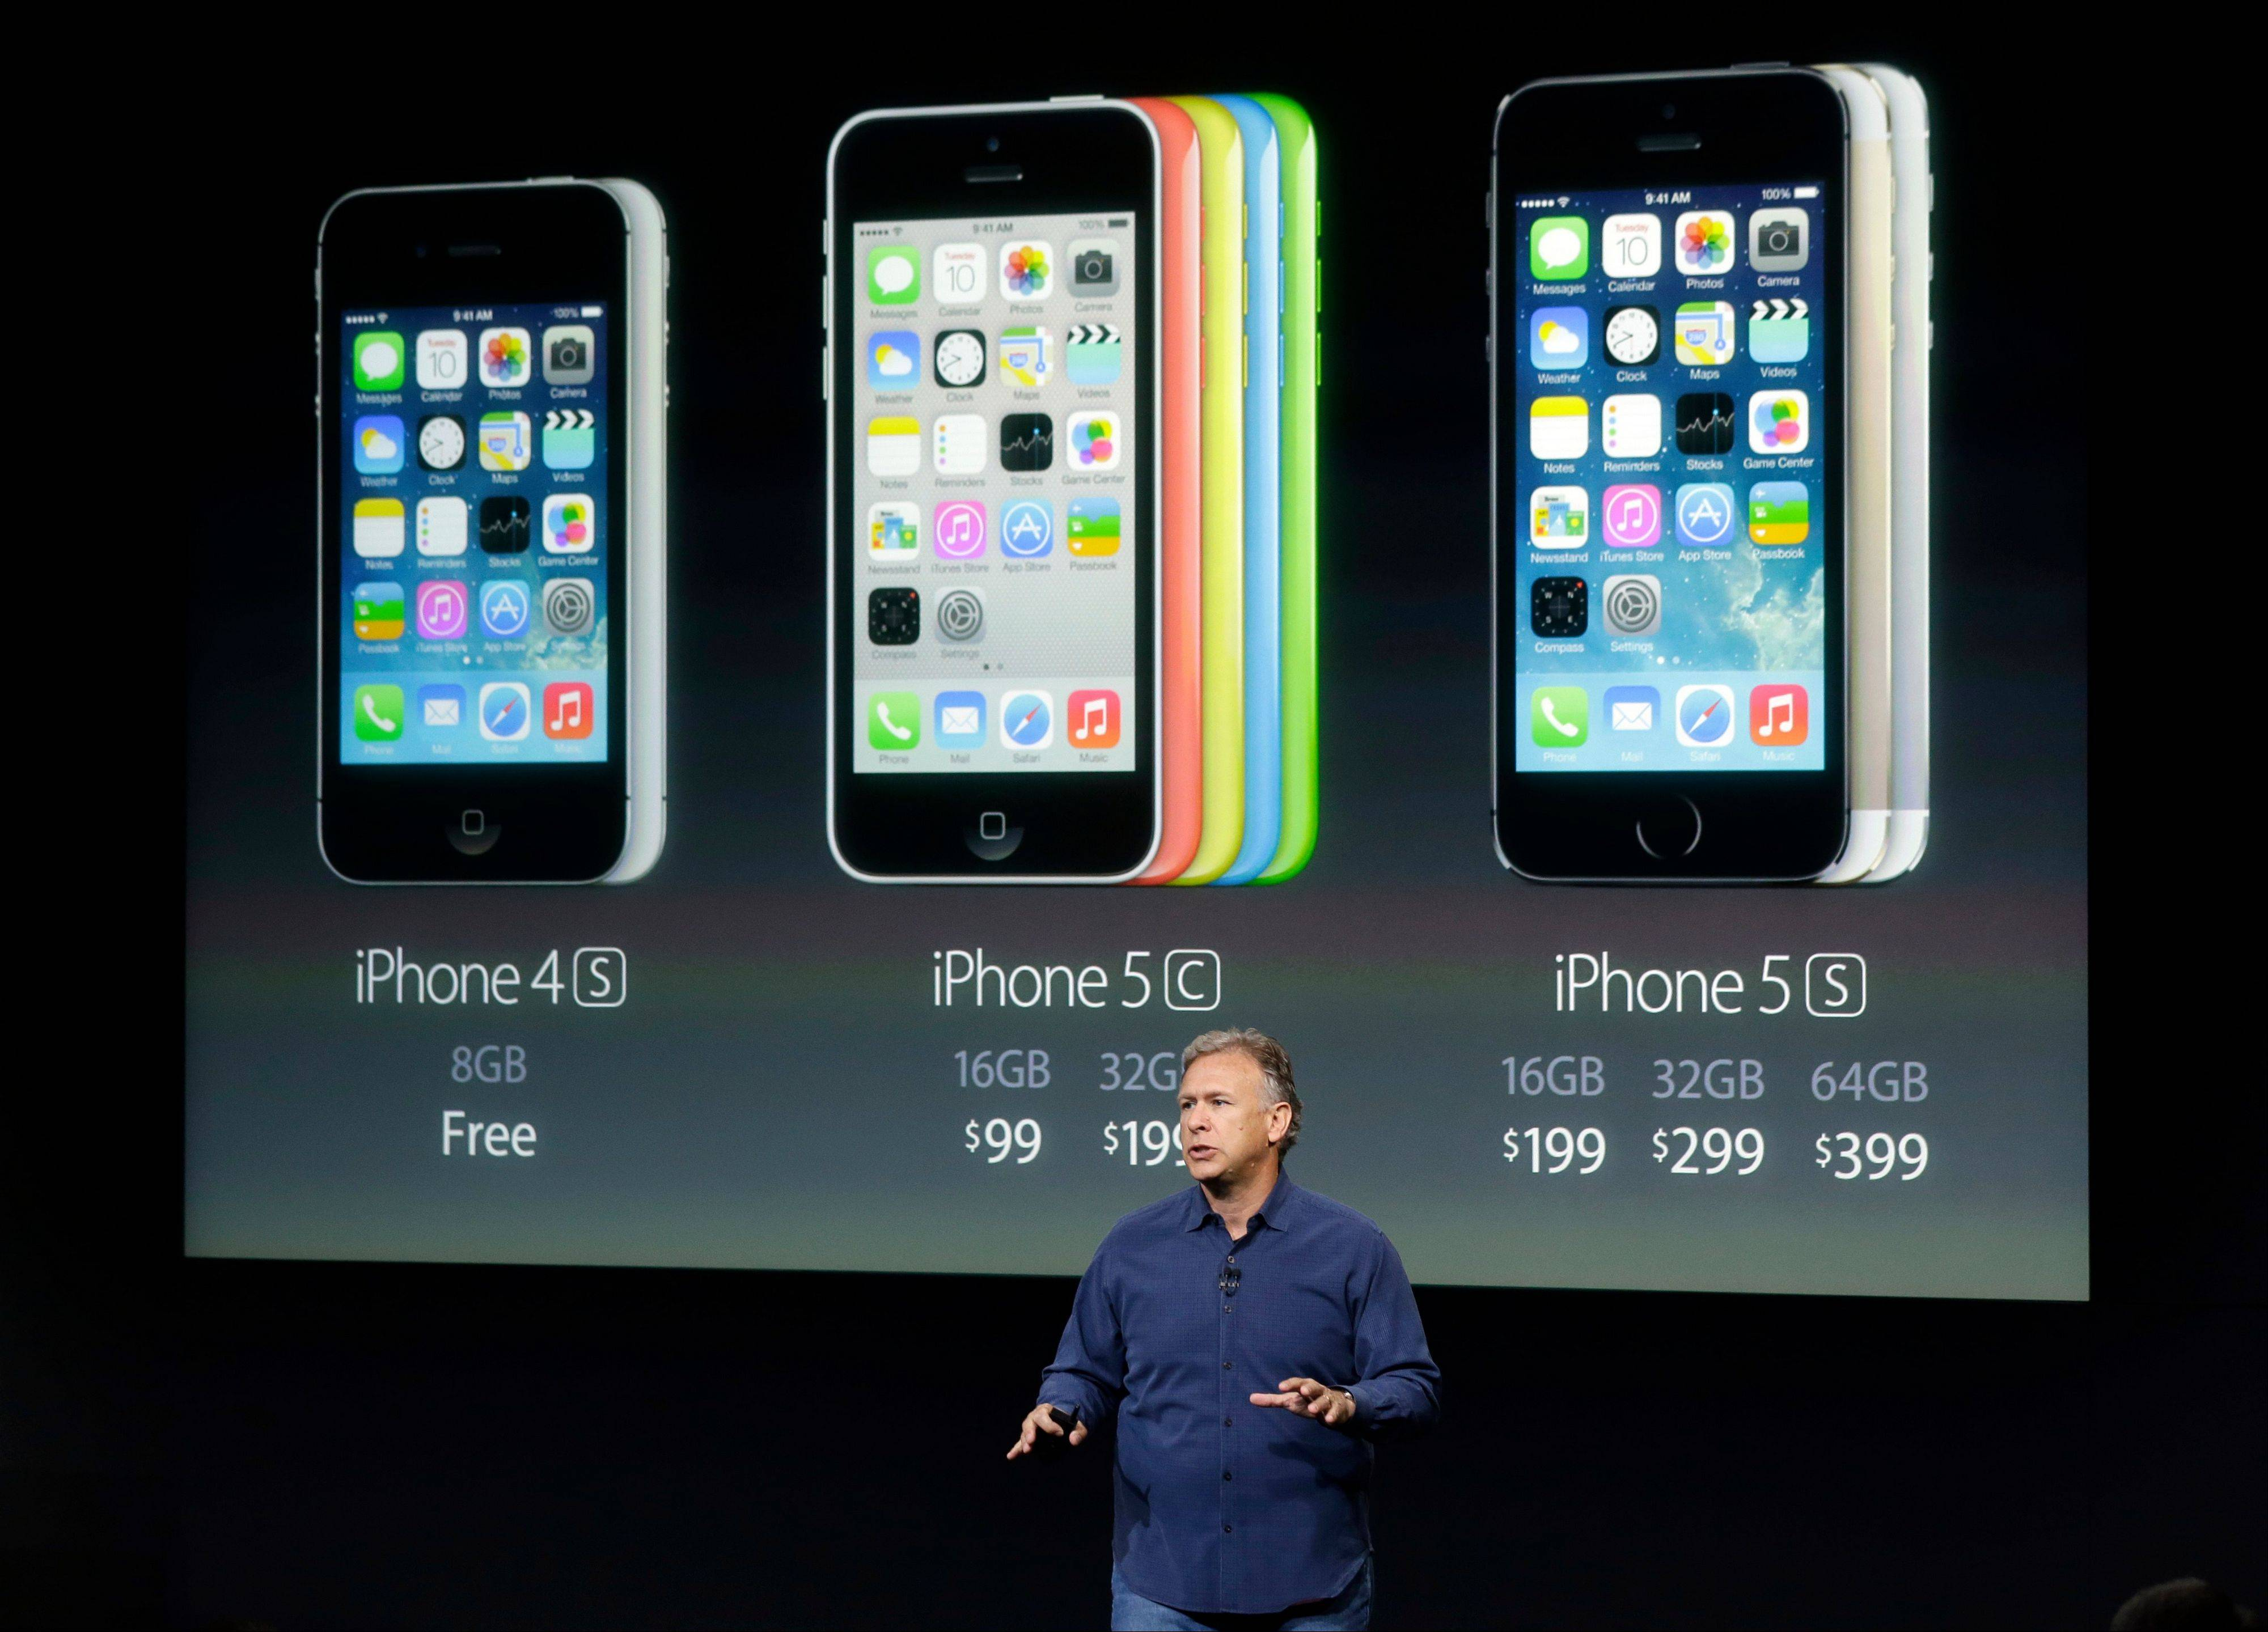 Phil Schiller, Apple�s senior vice president of worldwide product marketing, speaks onstage during the introduction of the new iPhone 5c and 5s in Cupertino, Calif.